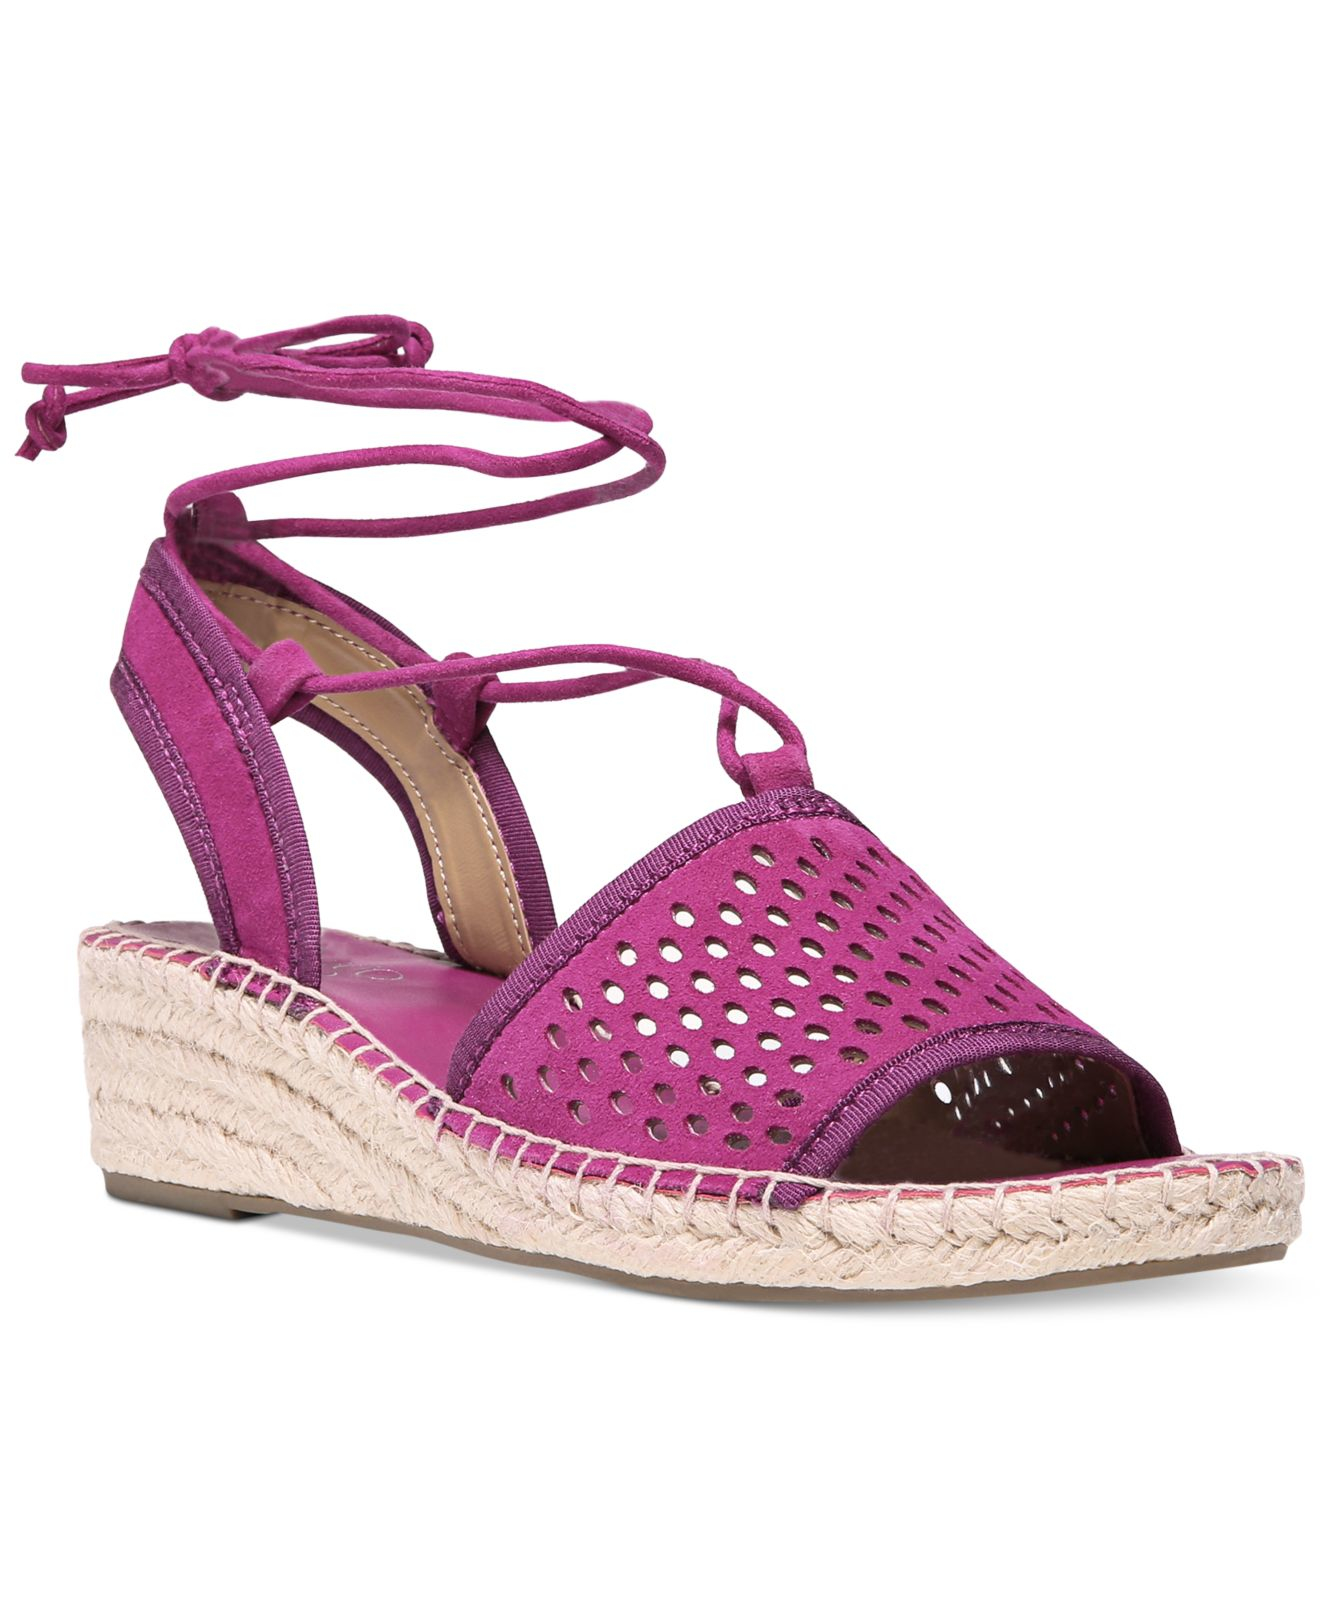 30c89a4f576 Lyst - Franco Sarto Liona Lace-up Espadrille Wedge Sandals in Pink